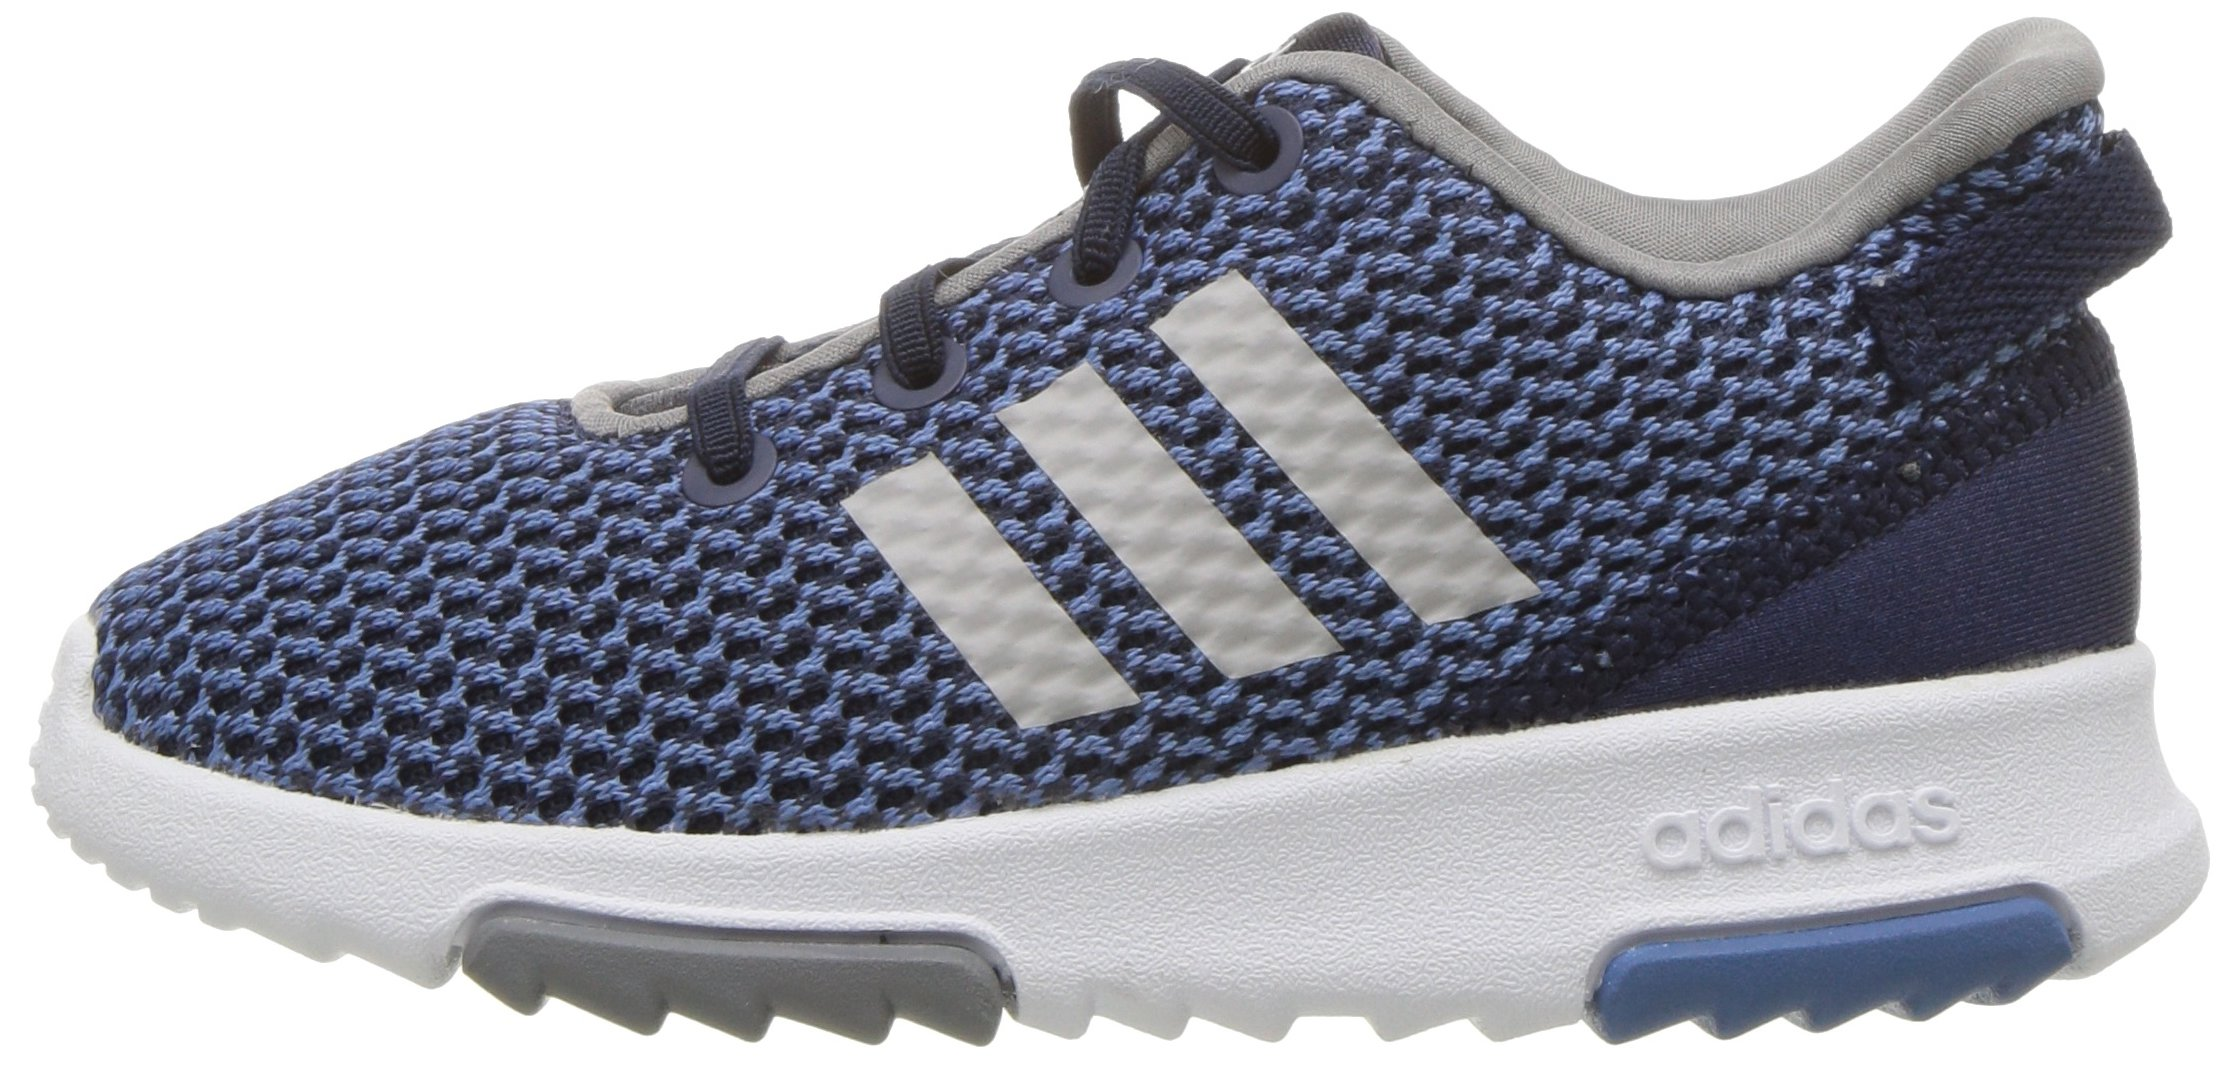 adidas Kids CF Racer TR Running Shoe, Collegiate Navy/Collegiate Navy/Grey, 3K M US Toddler by adidas (Image #5)